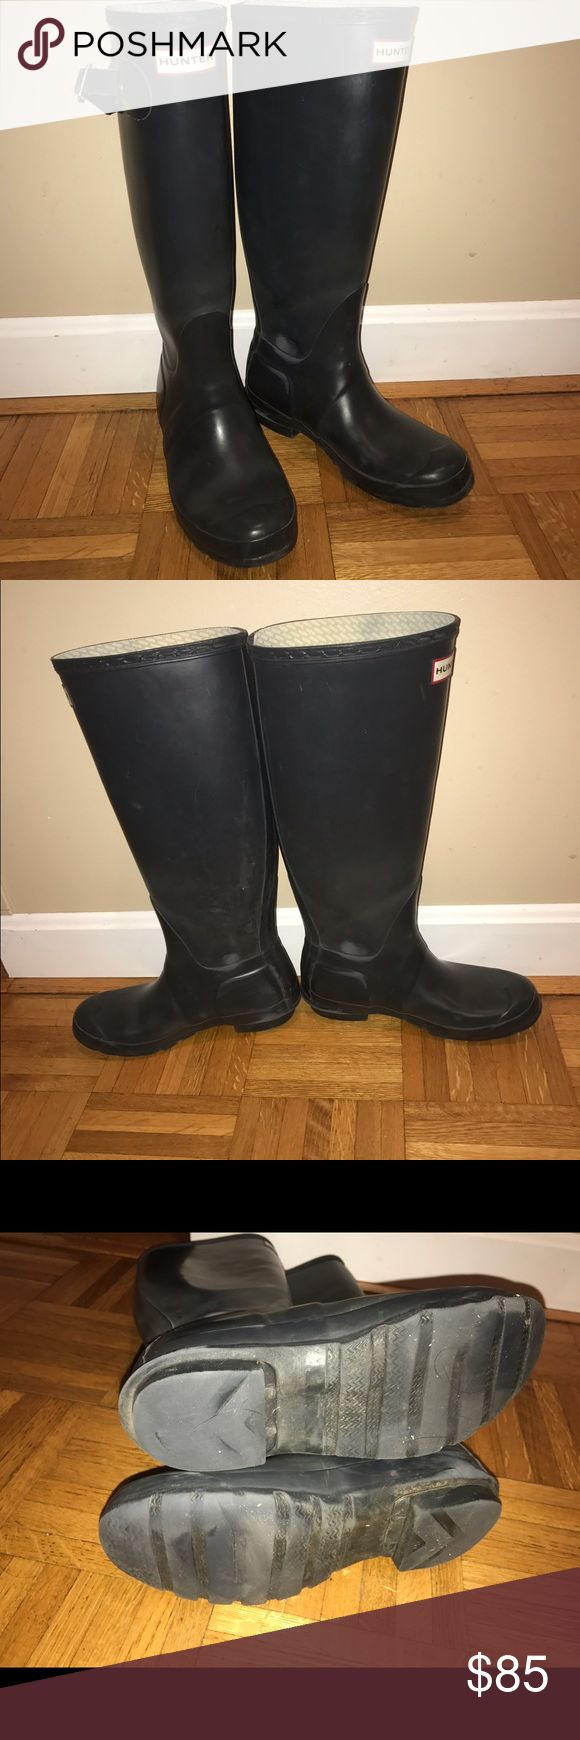 Navy blue women's Hunter Boots Size 5F (euro 35/36) women's Hunter boots in Navy blue. These are the matte finish, tall style. Some signs of wear on the insides of the boots but do not notice it when worn. One of the buckles did rip but is still on the boot. Excellent shape otherwise. Fit very large, these fit me a bit snug but I wear a 7.5-8 normally. Size on listing is reflective of the European size as I feel it is more accurate. Hunter Shoes Winter & Rain Boots